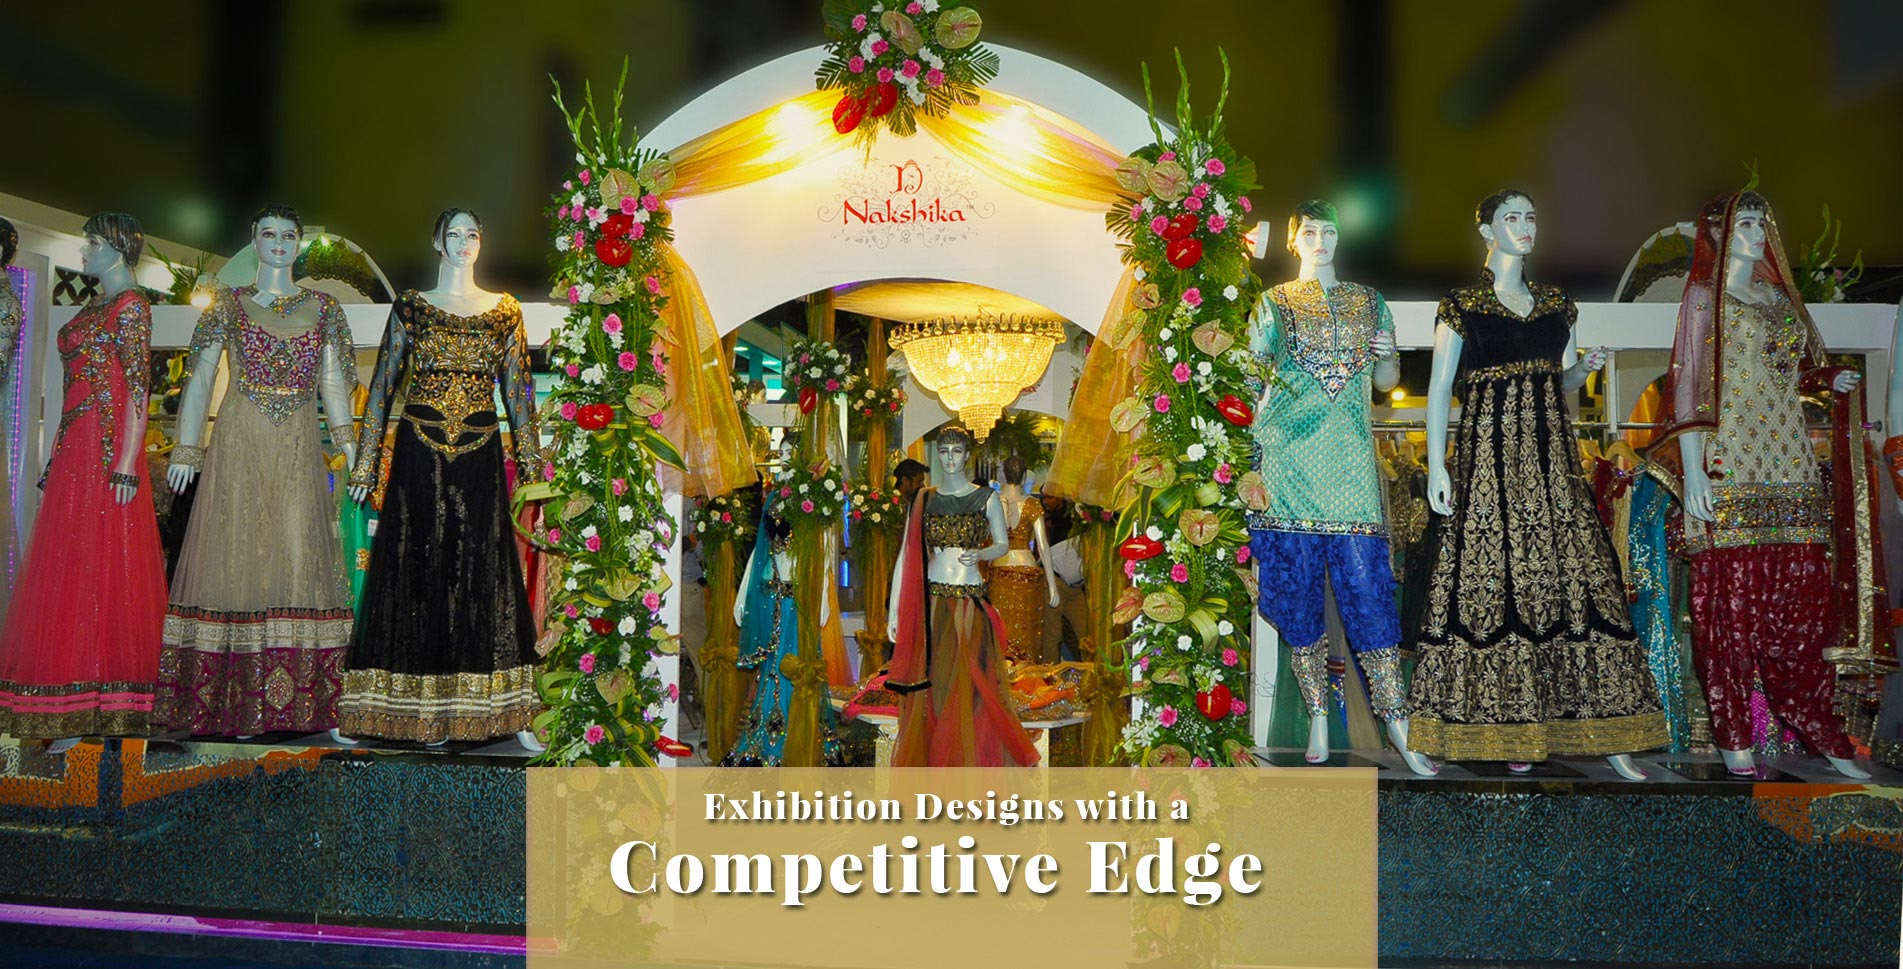 Exhibition Designs with a Competitive Edge